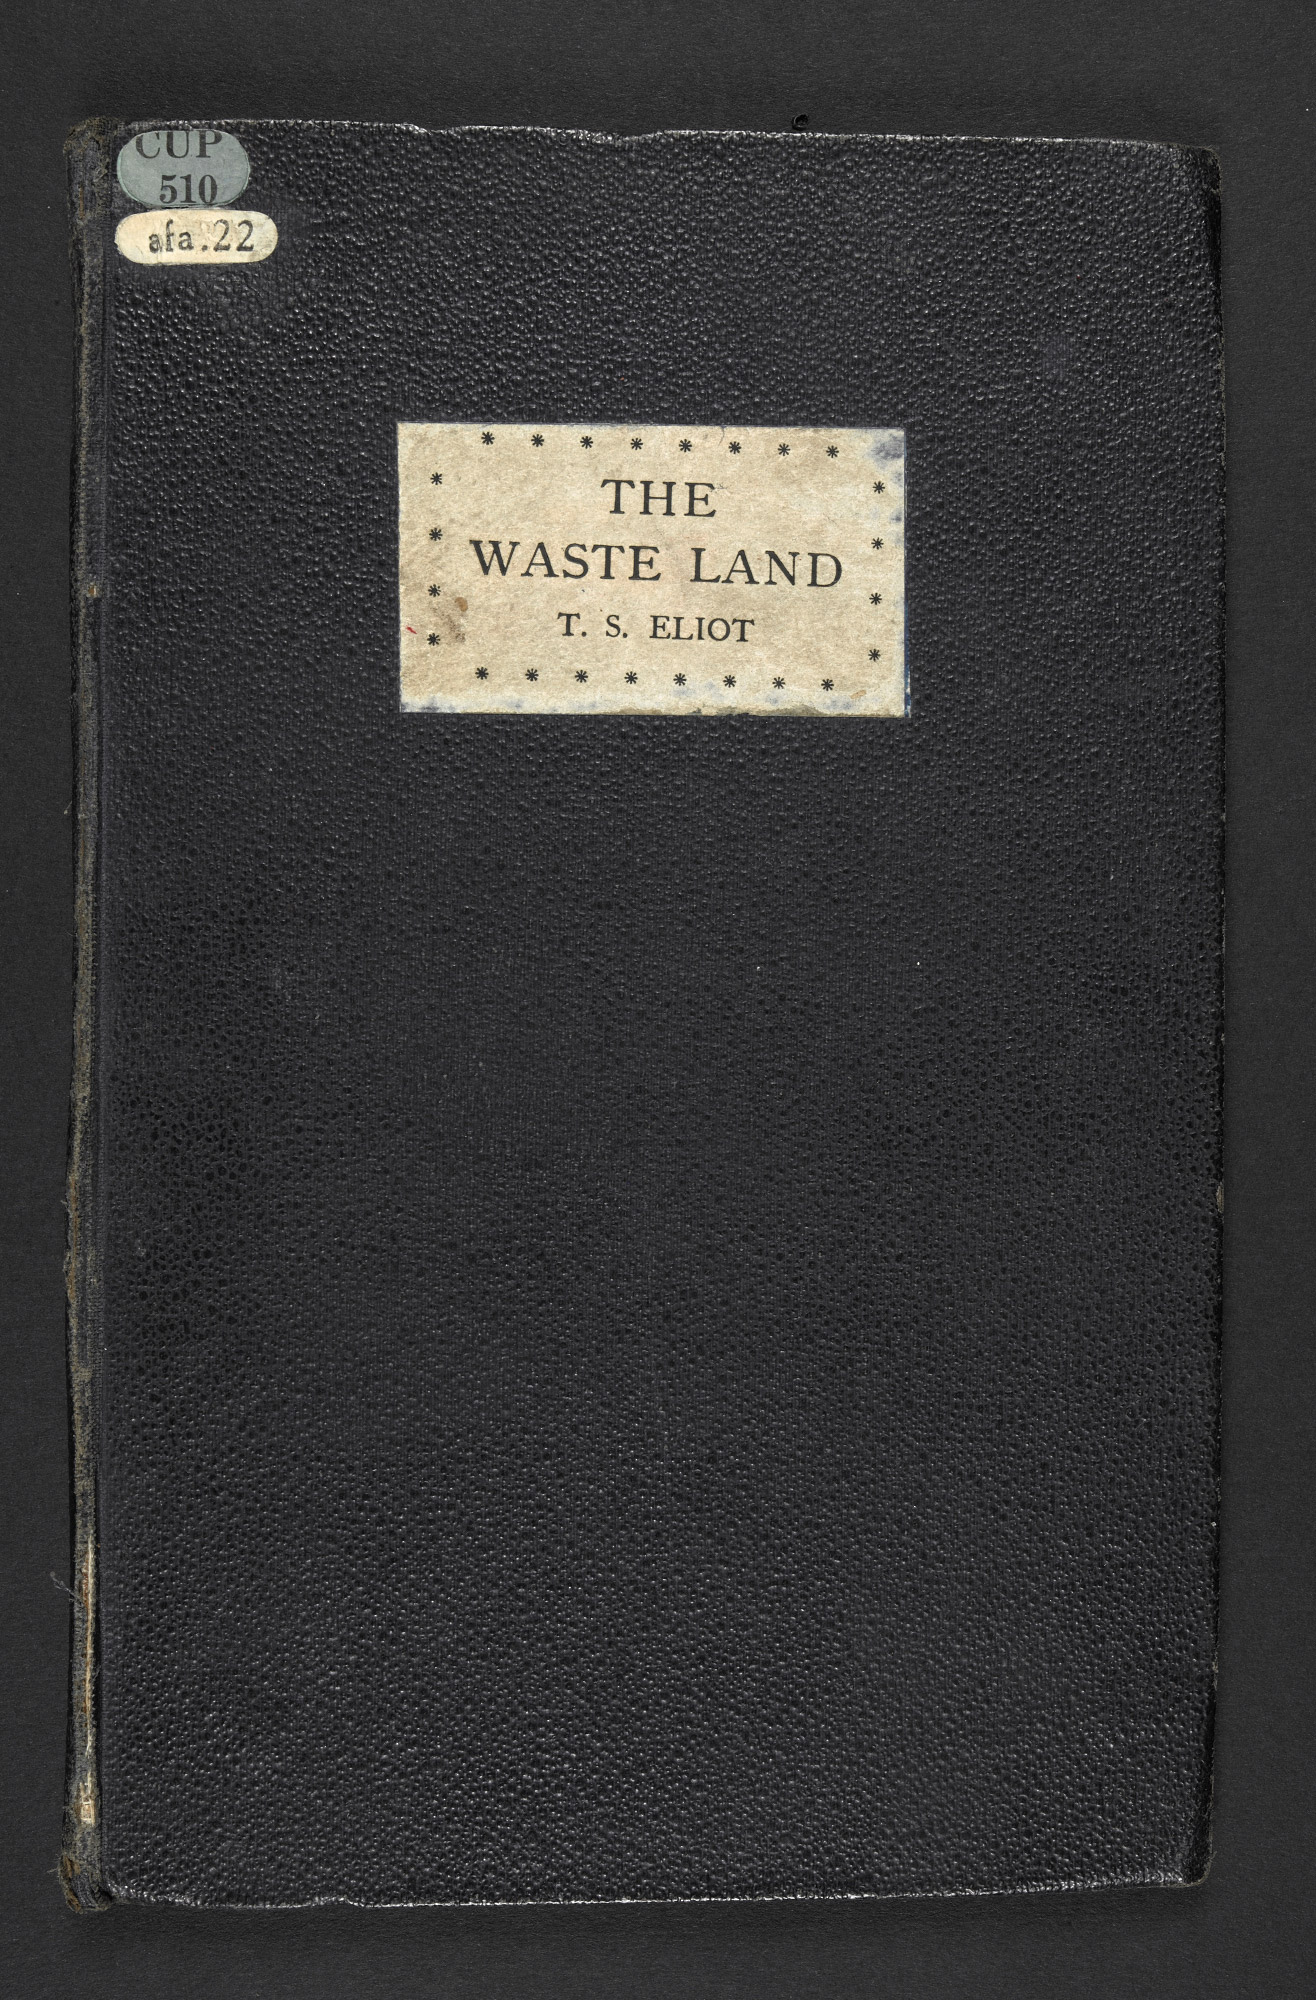 The Waste Land by T S Eliot, Hogarth Press edition